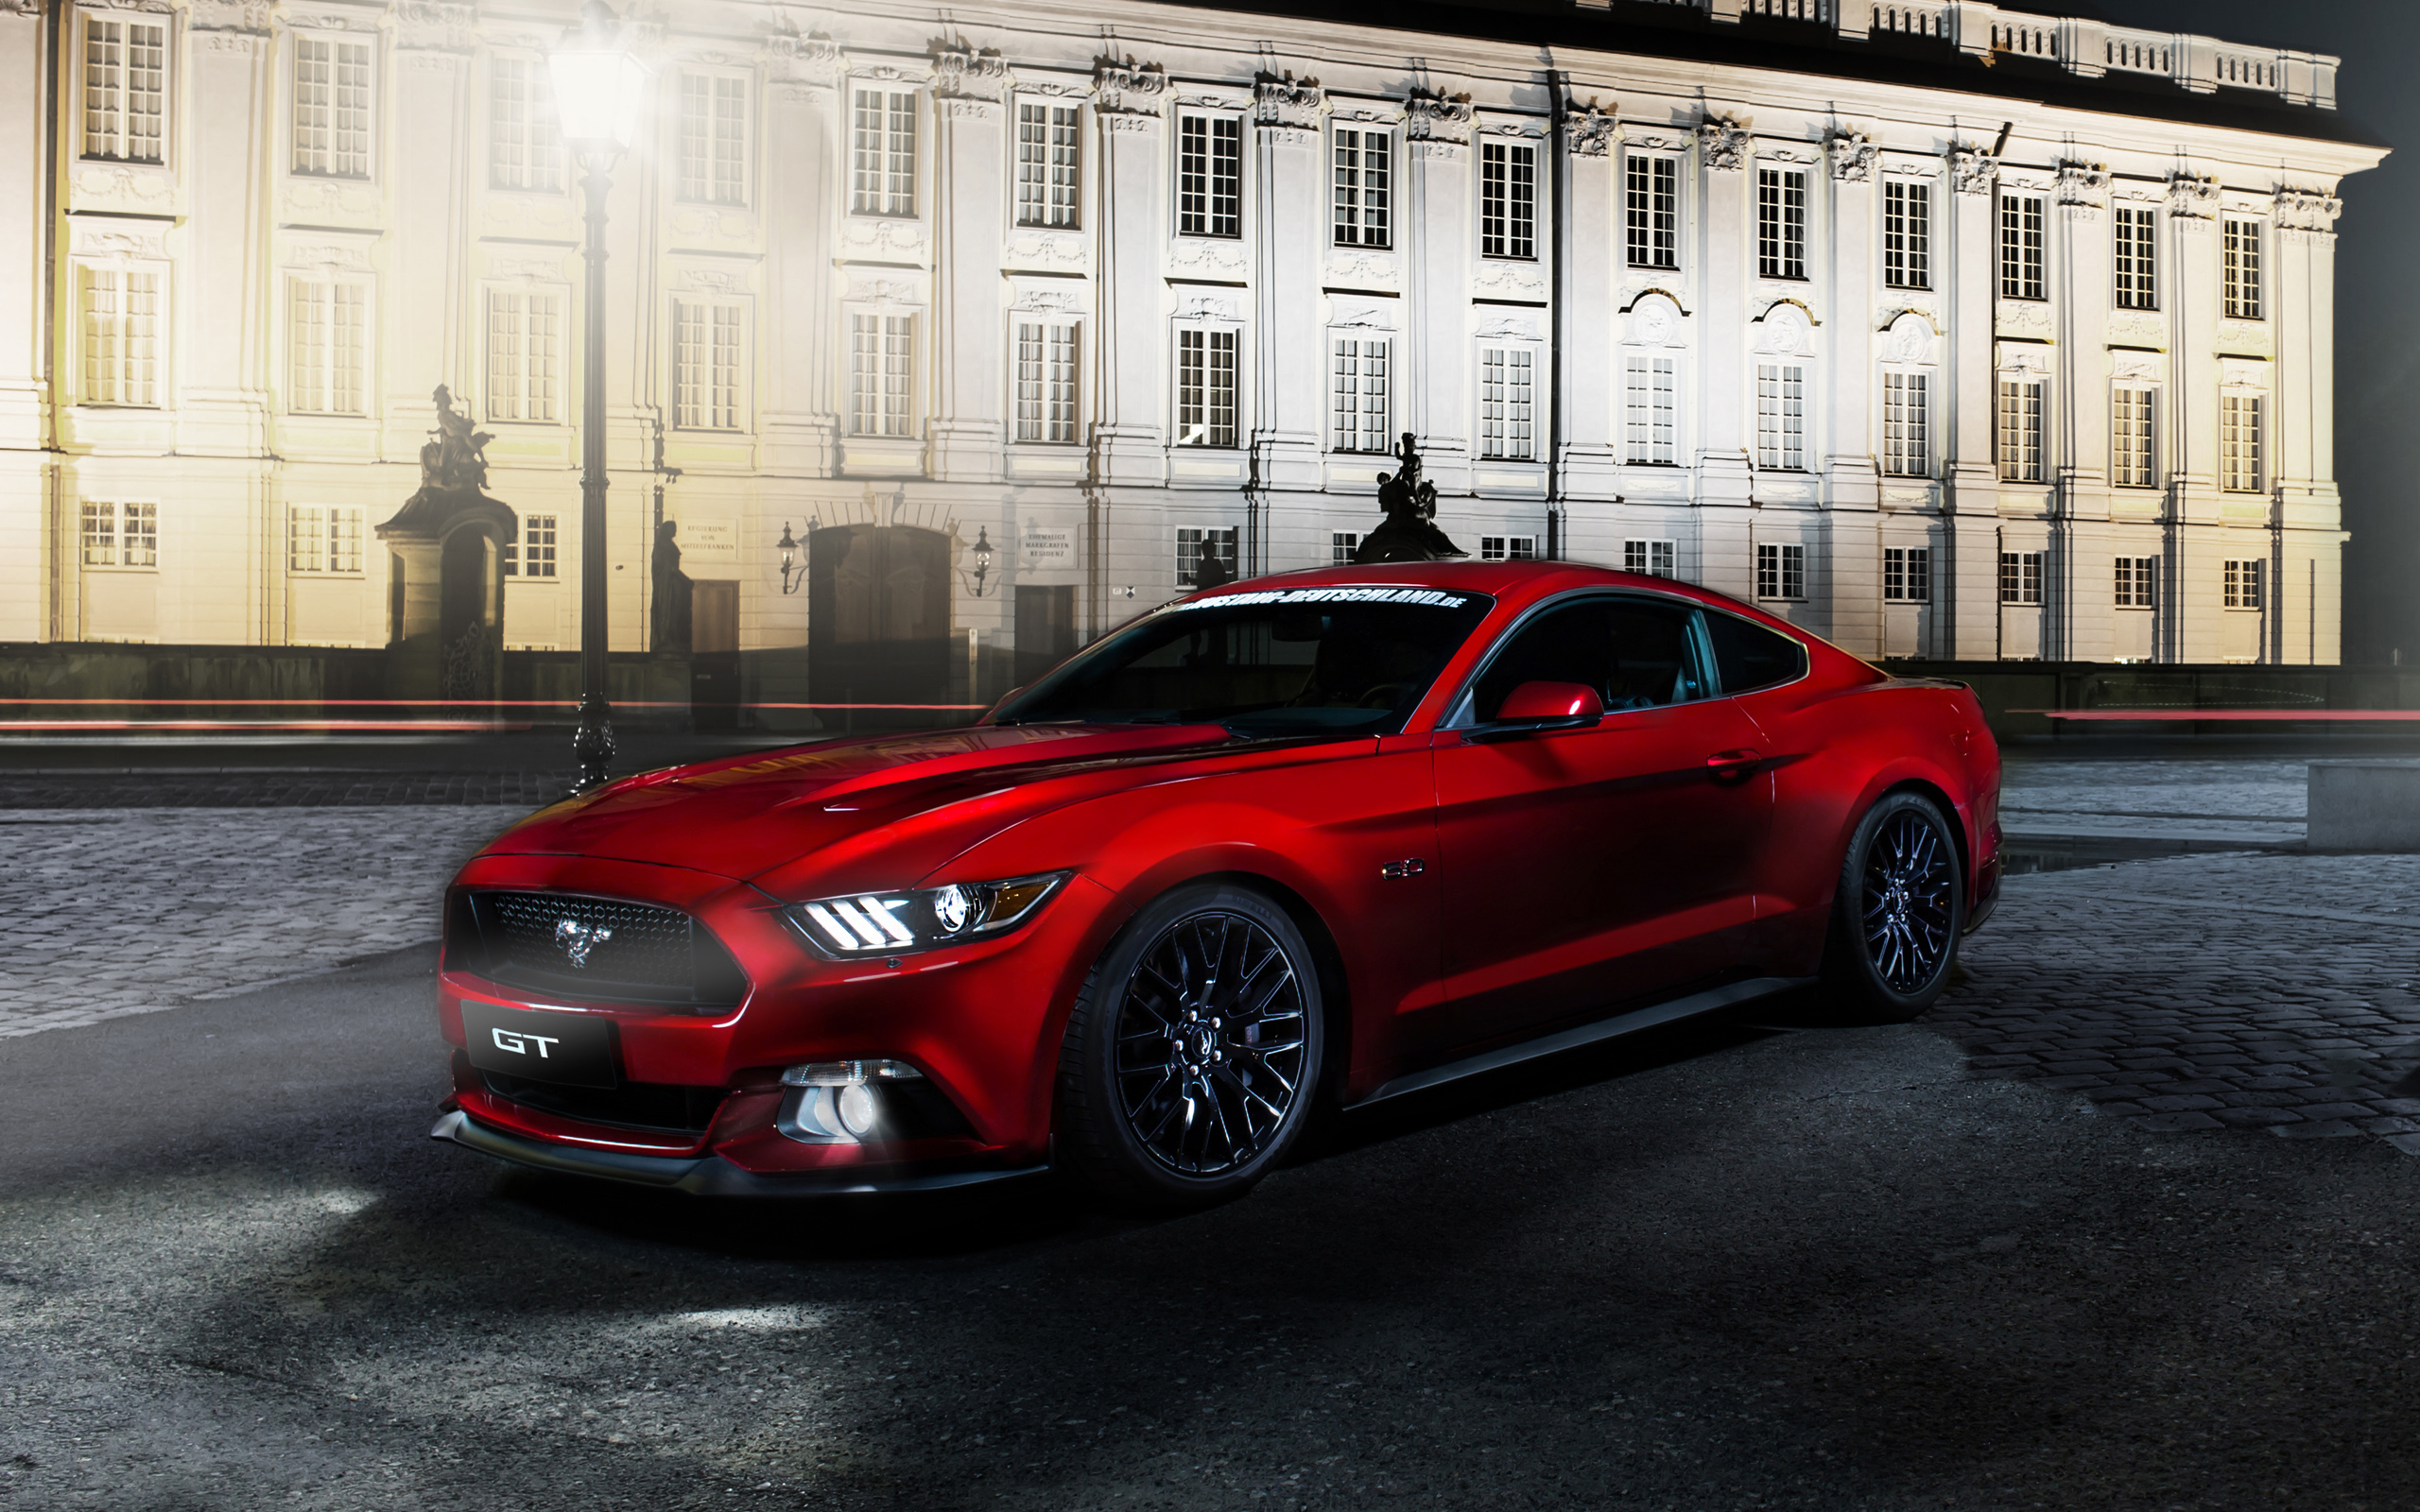 Ford Mustang GT 2015 Wallpaper HD Car Wallpapers 2560x1600